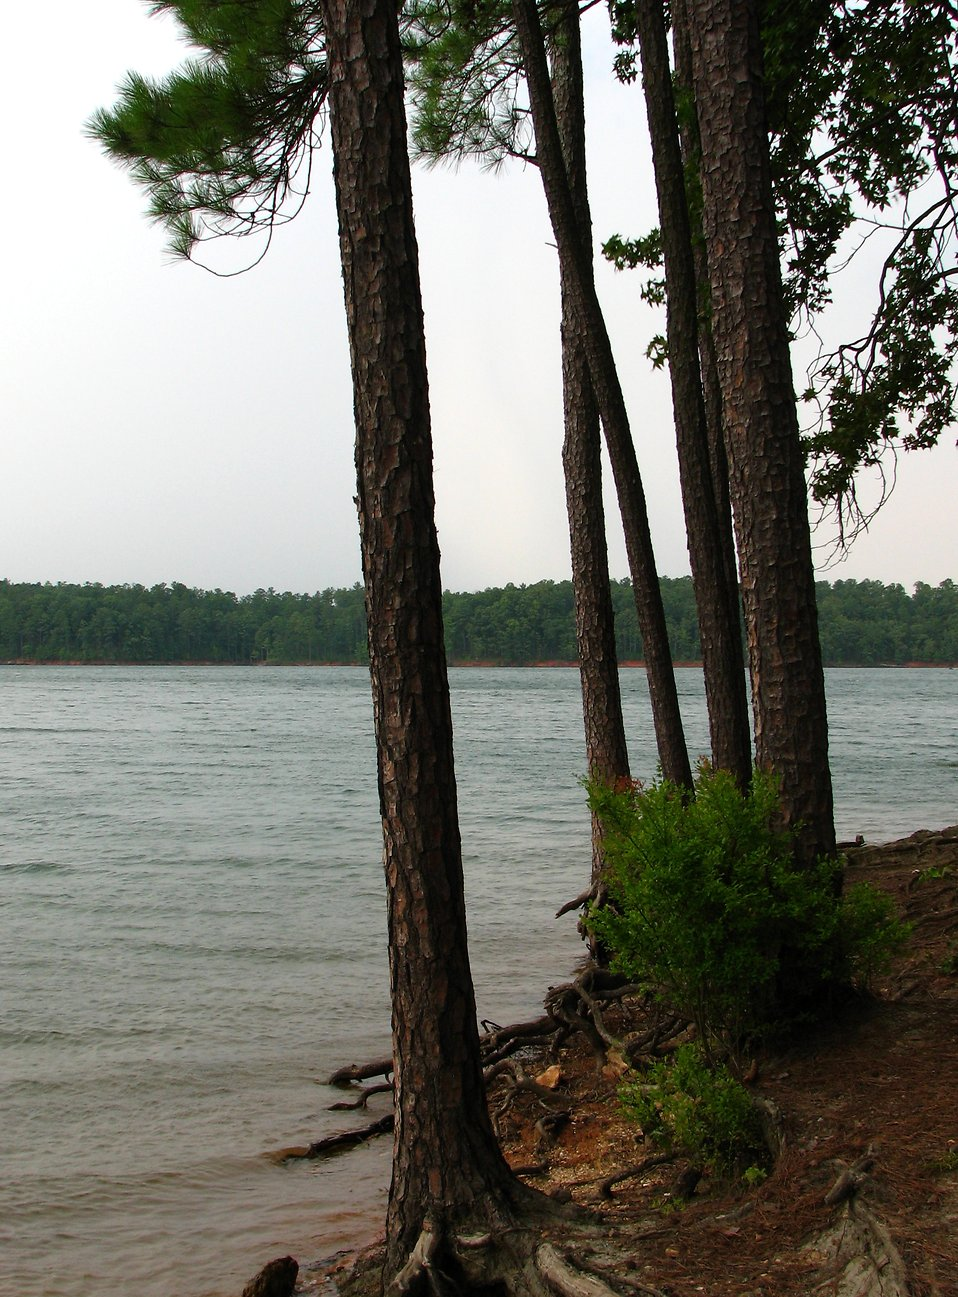 View of trees by a lake : Free Stock Photo